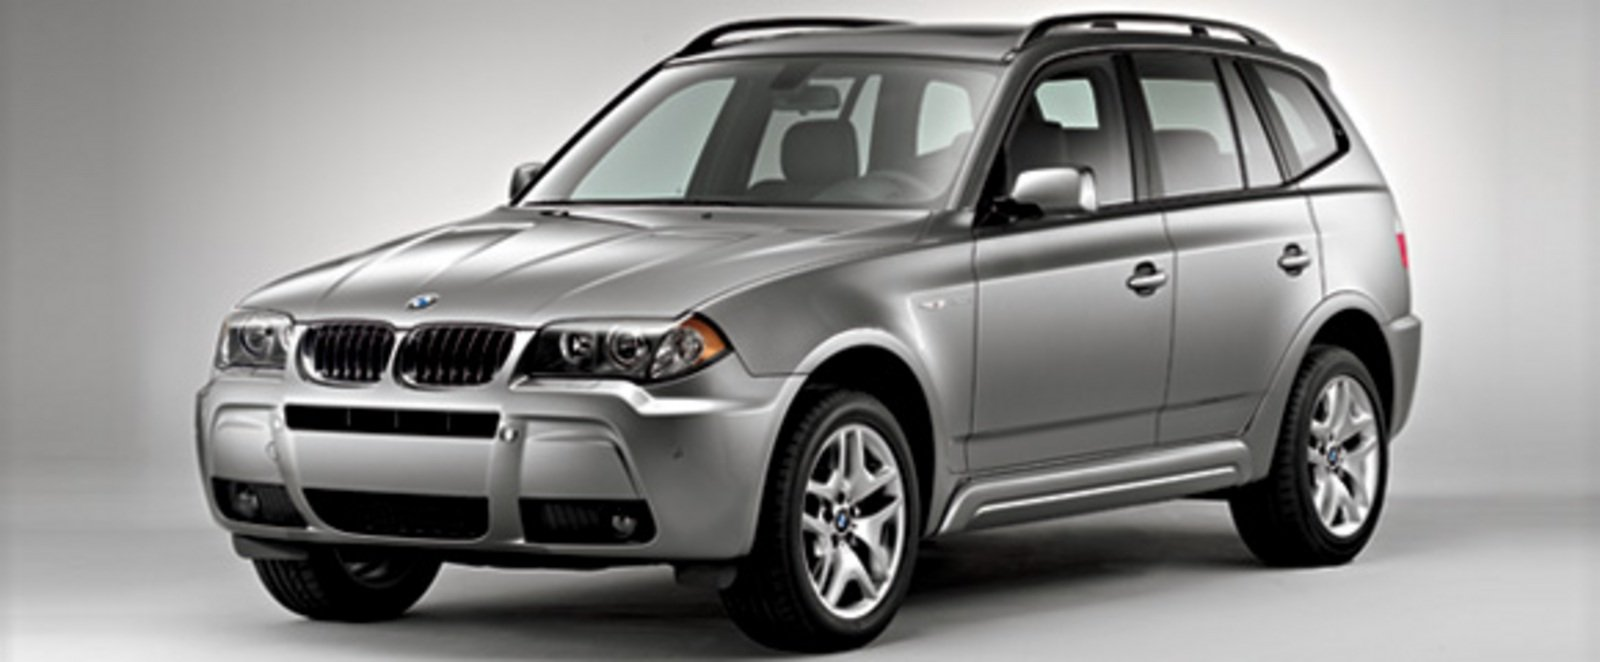 2006 BMW X3 3.0i Review